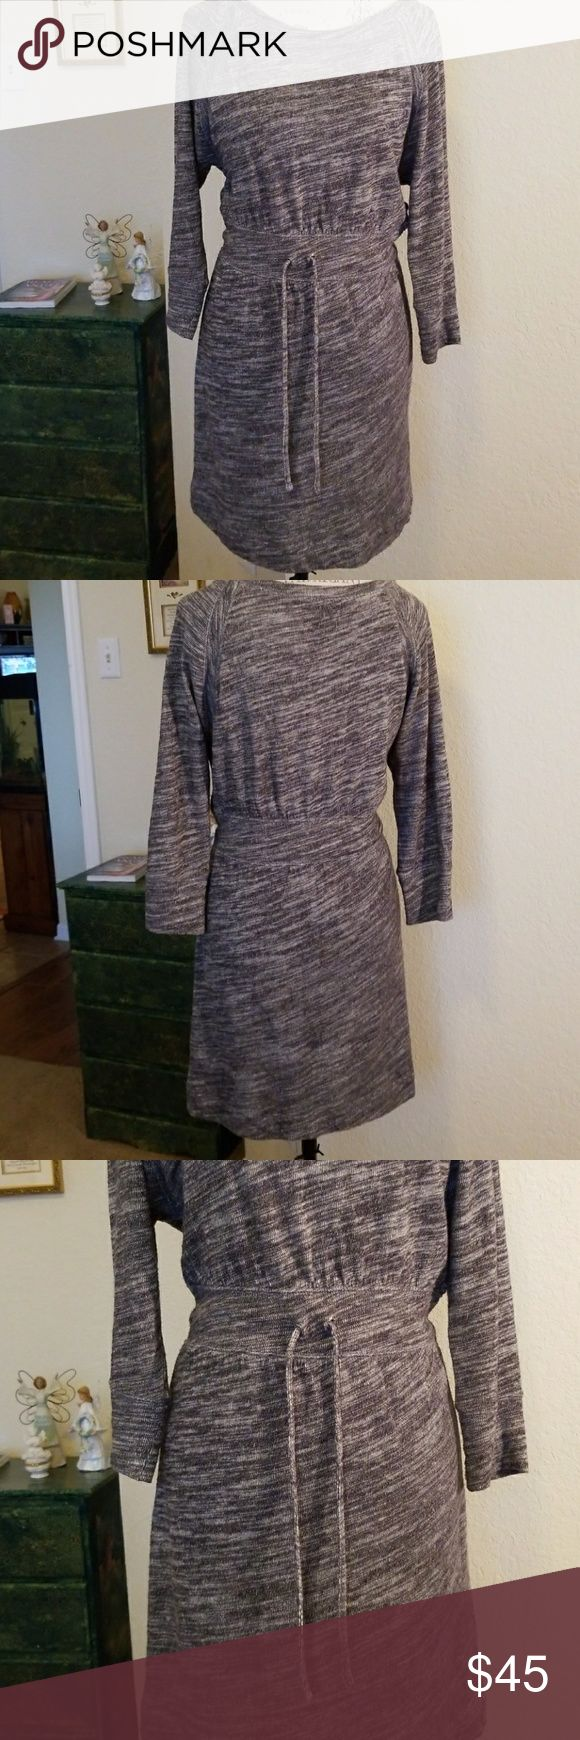 🆕️ Juicy Couture Dress Turn on the charm in this woman's Juicy Couture Dress, featuring 3/4 length sleeves and drawstring waist. Wear with leggings and boots for a stylish look. Great condition. Juicy Couture Dresses